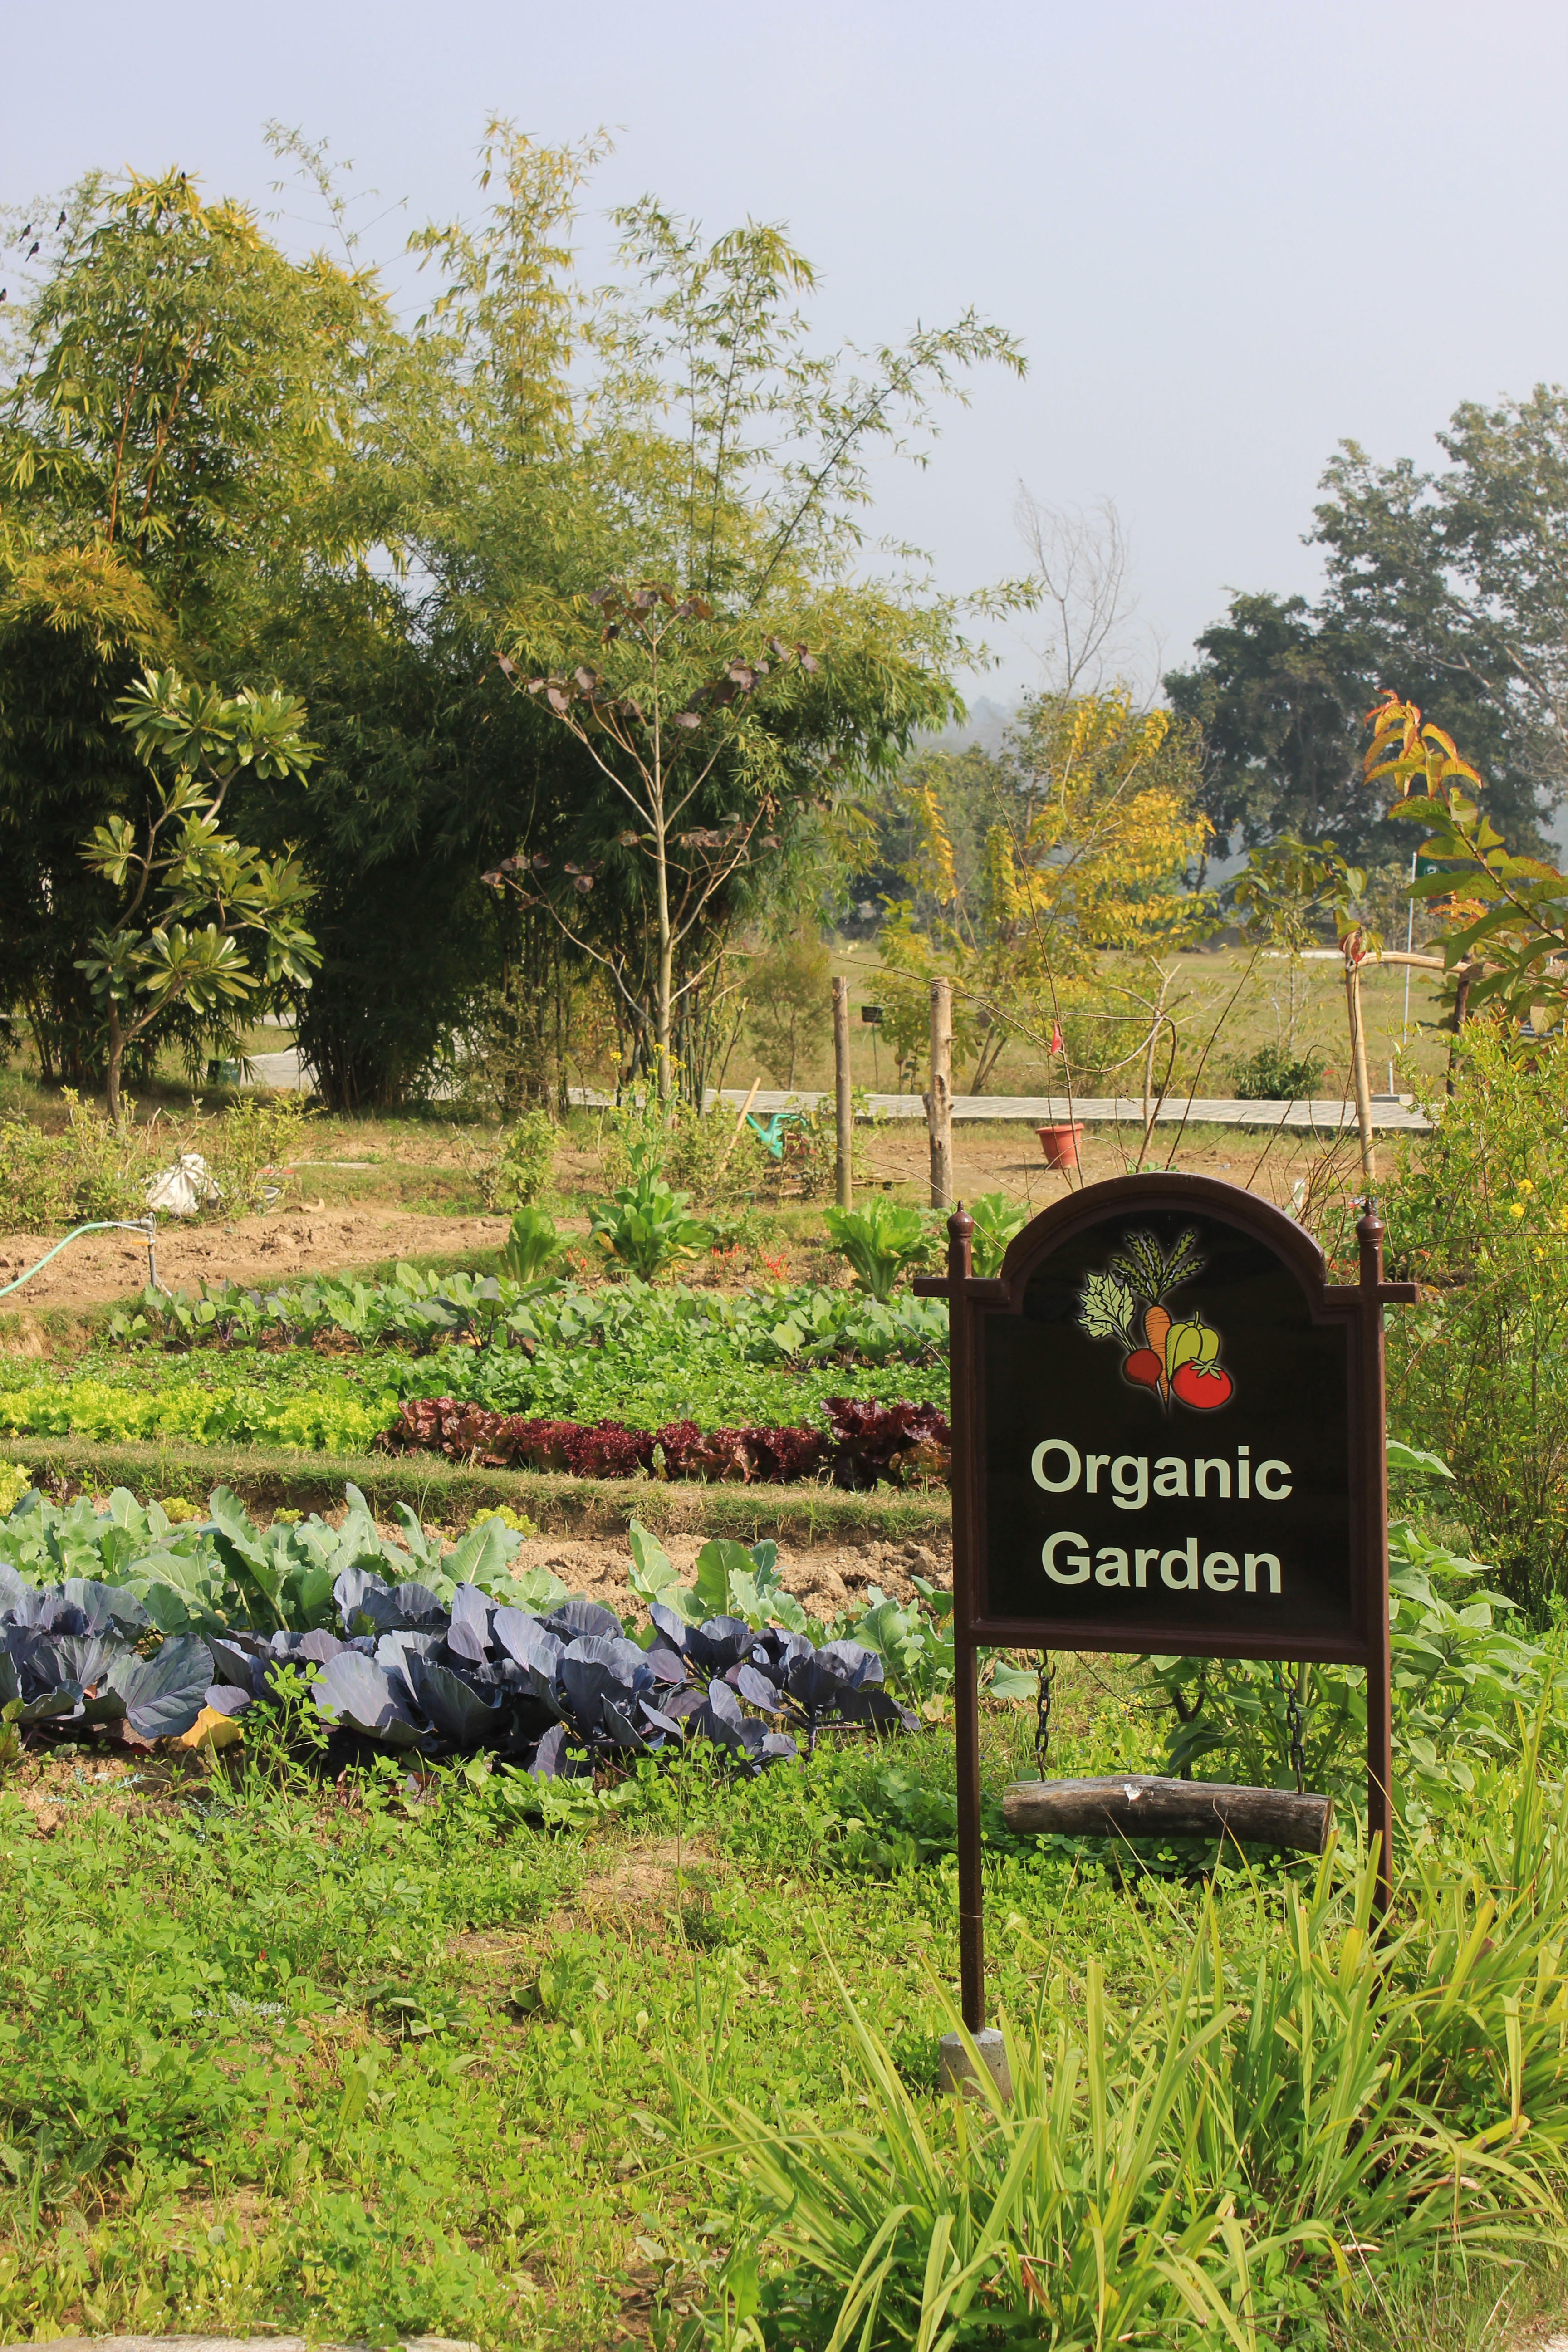 You can pick your own vegetables from the Organic Garden at Aahana